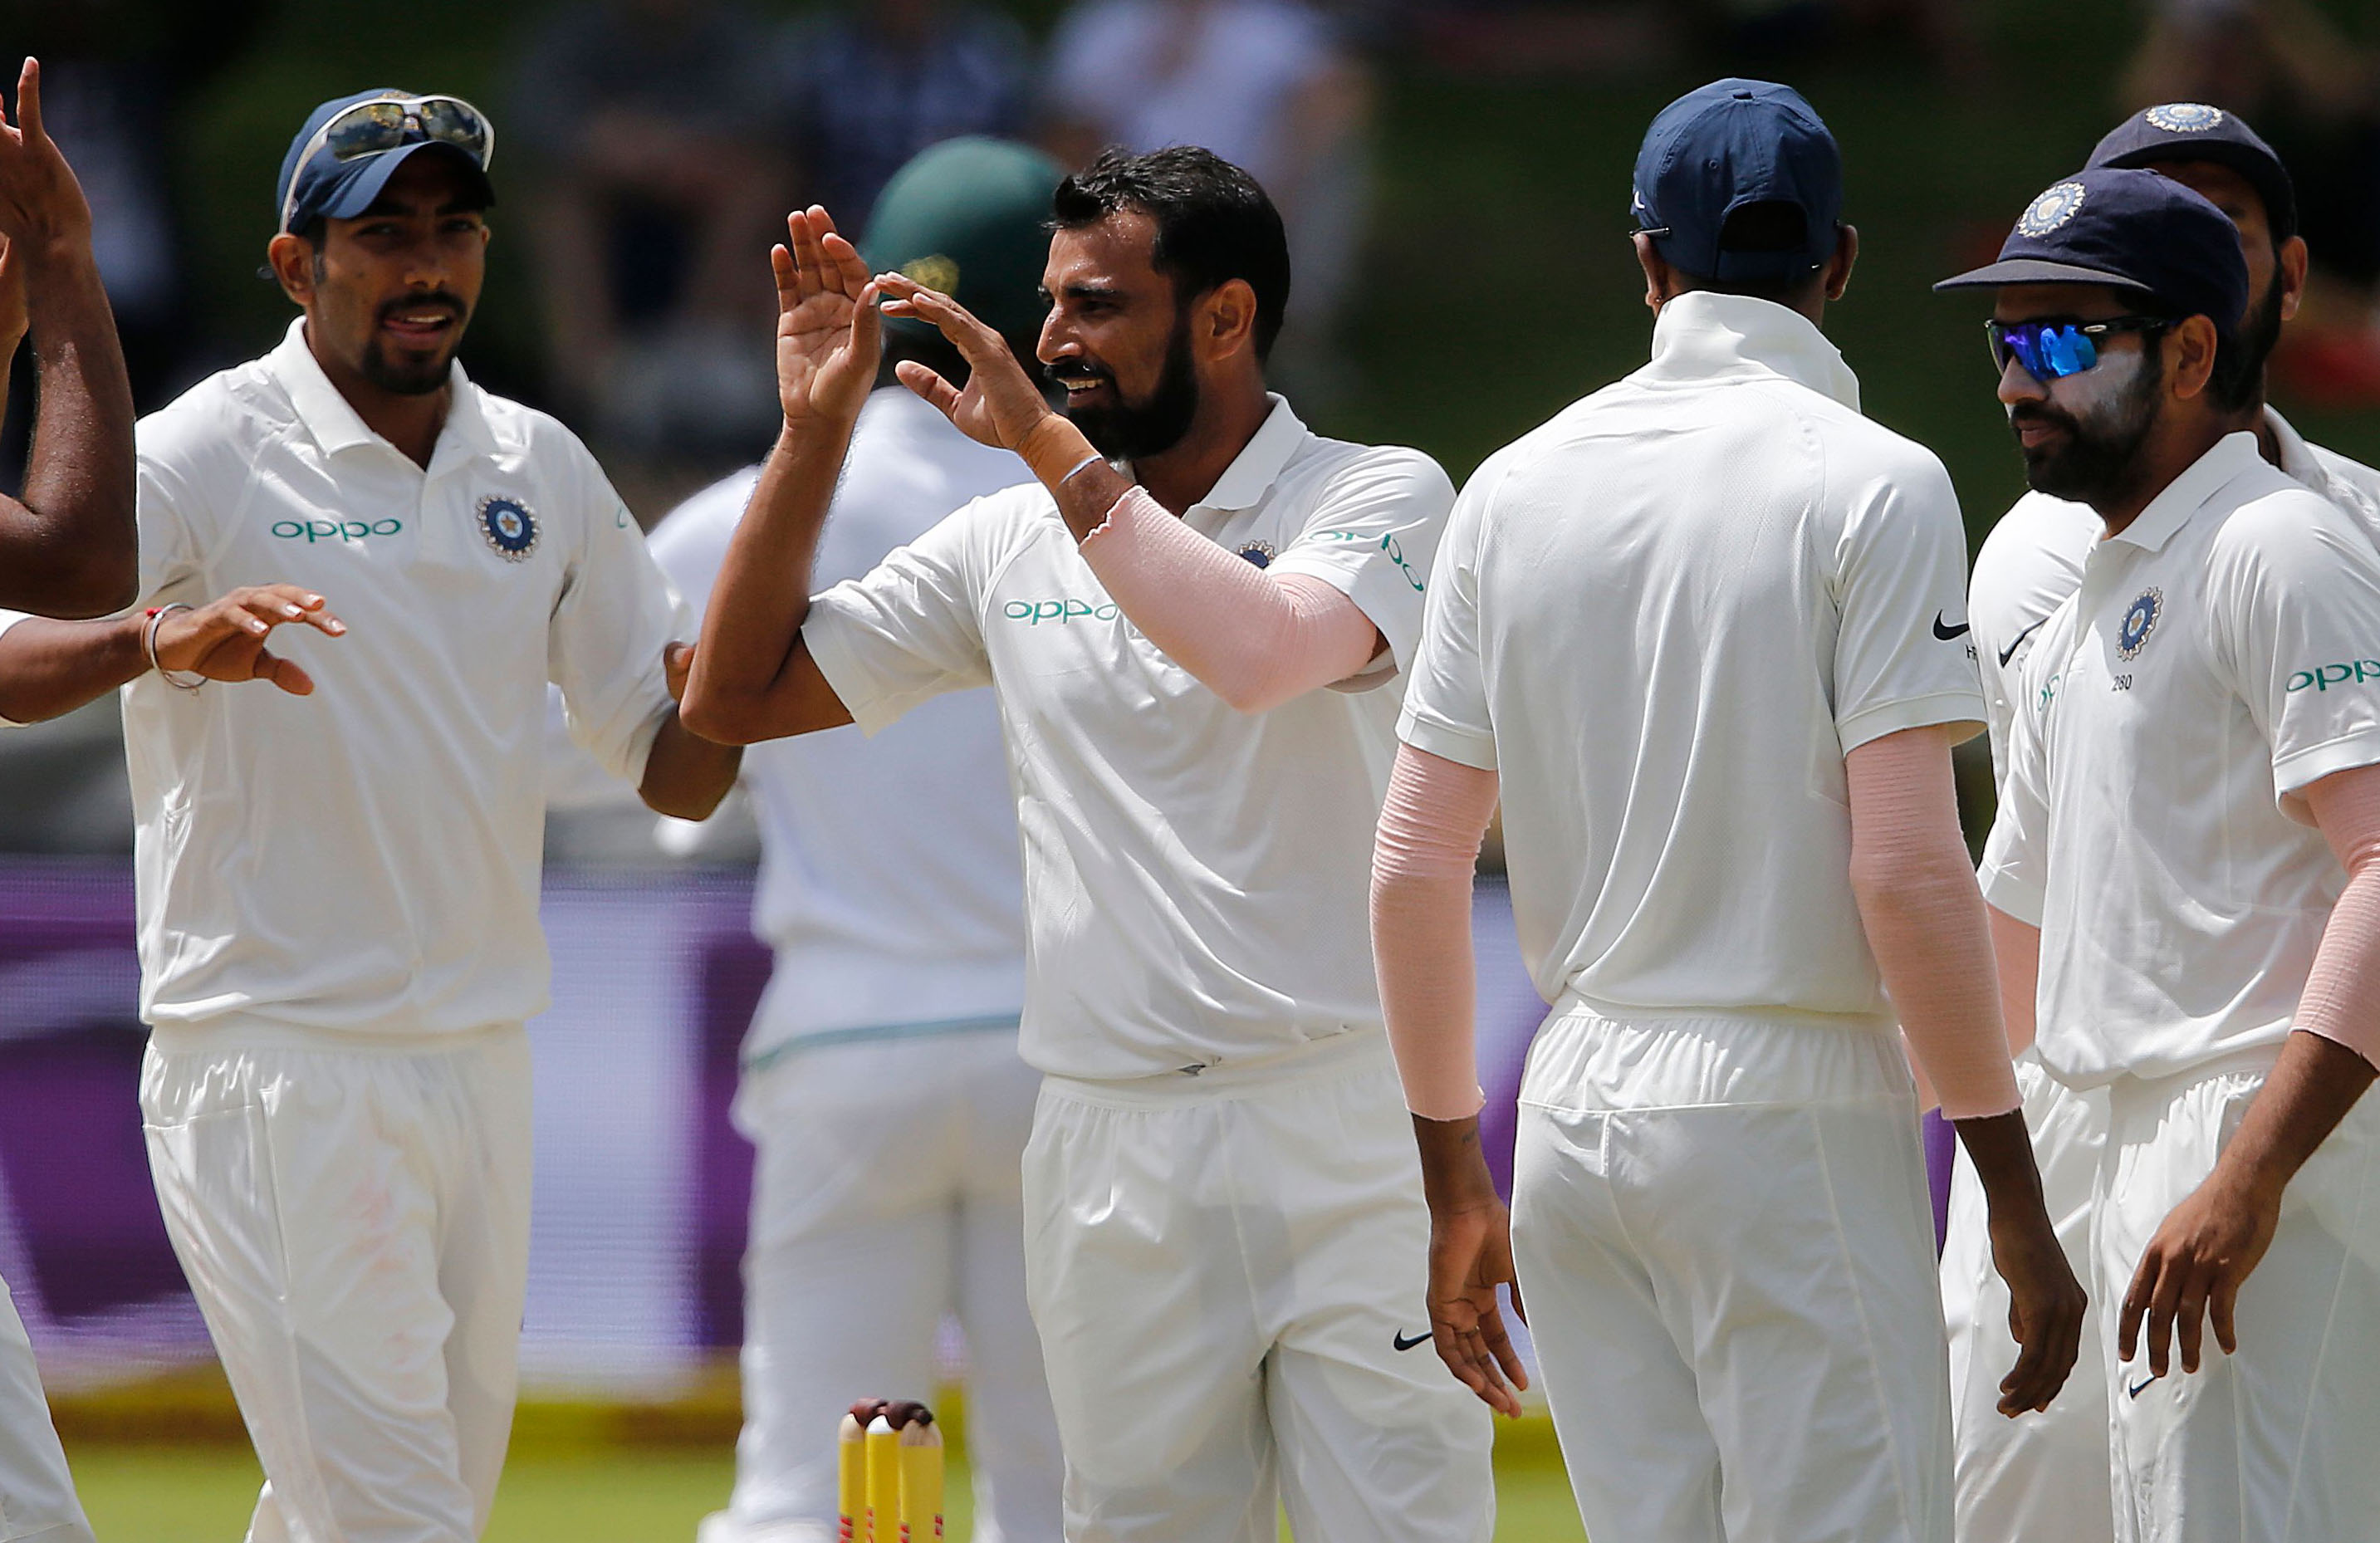 Mohammad Shami helped India rout South Africa before lunch // Getty